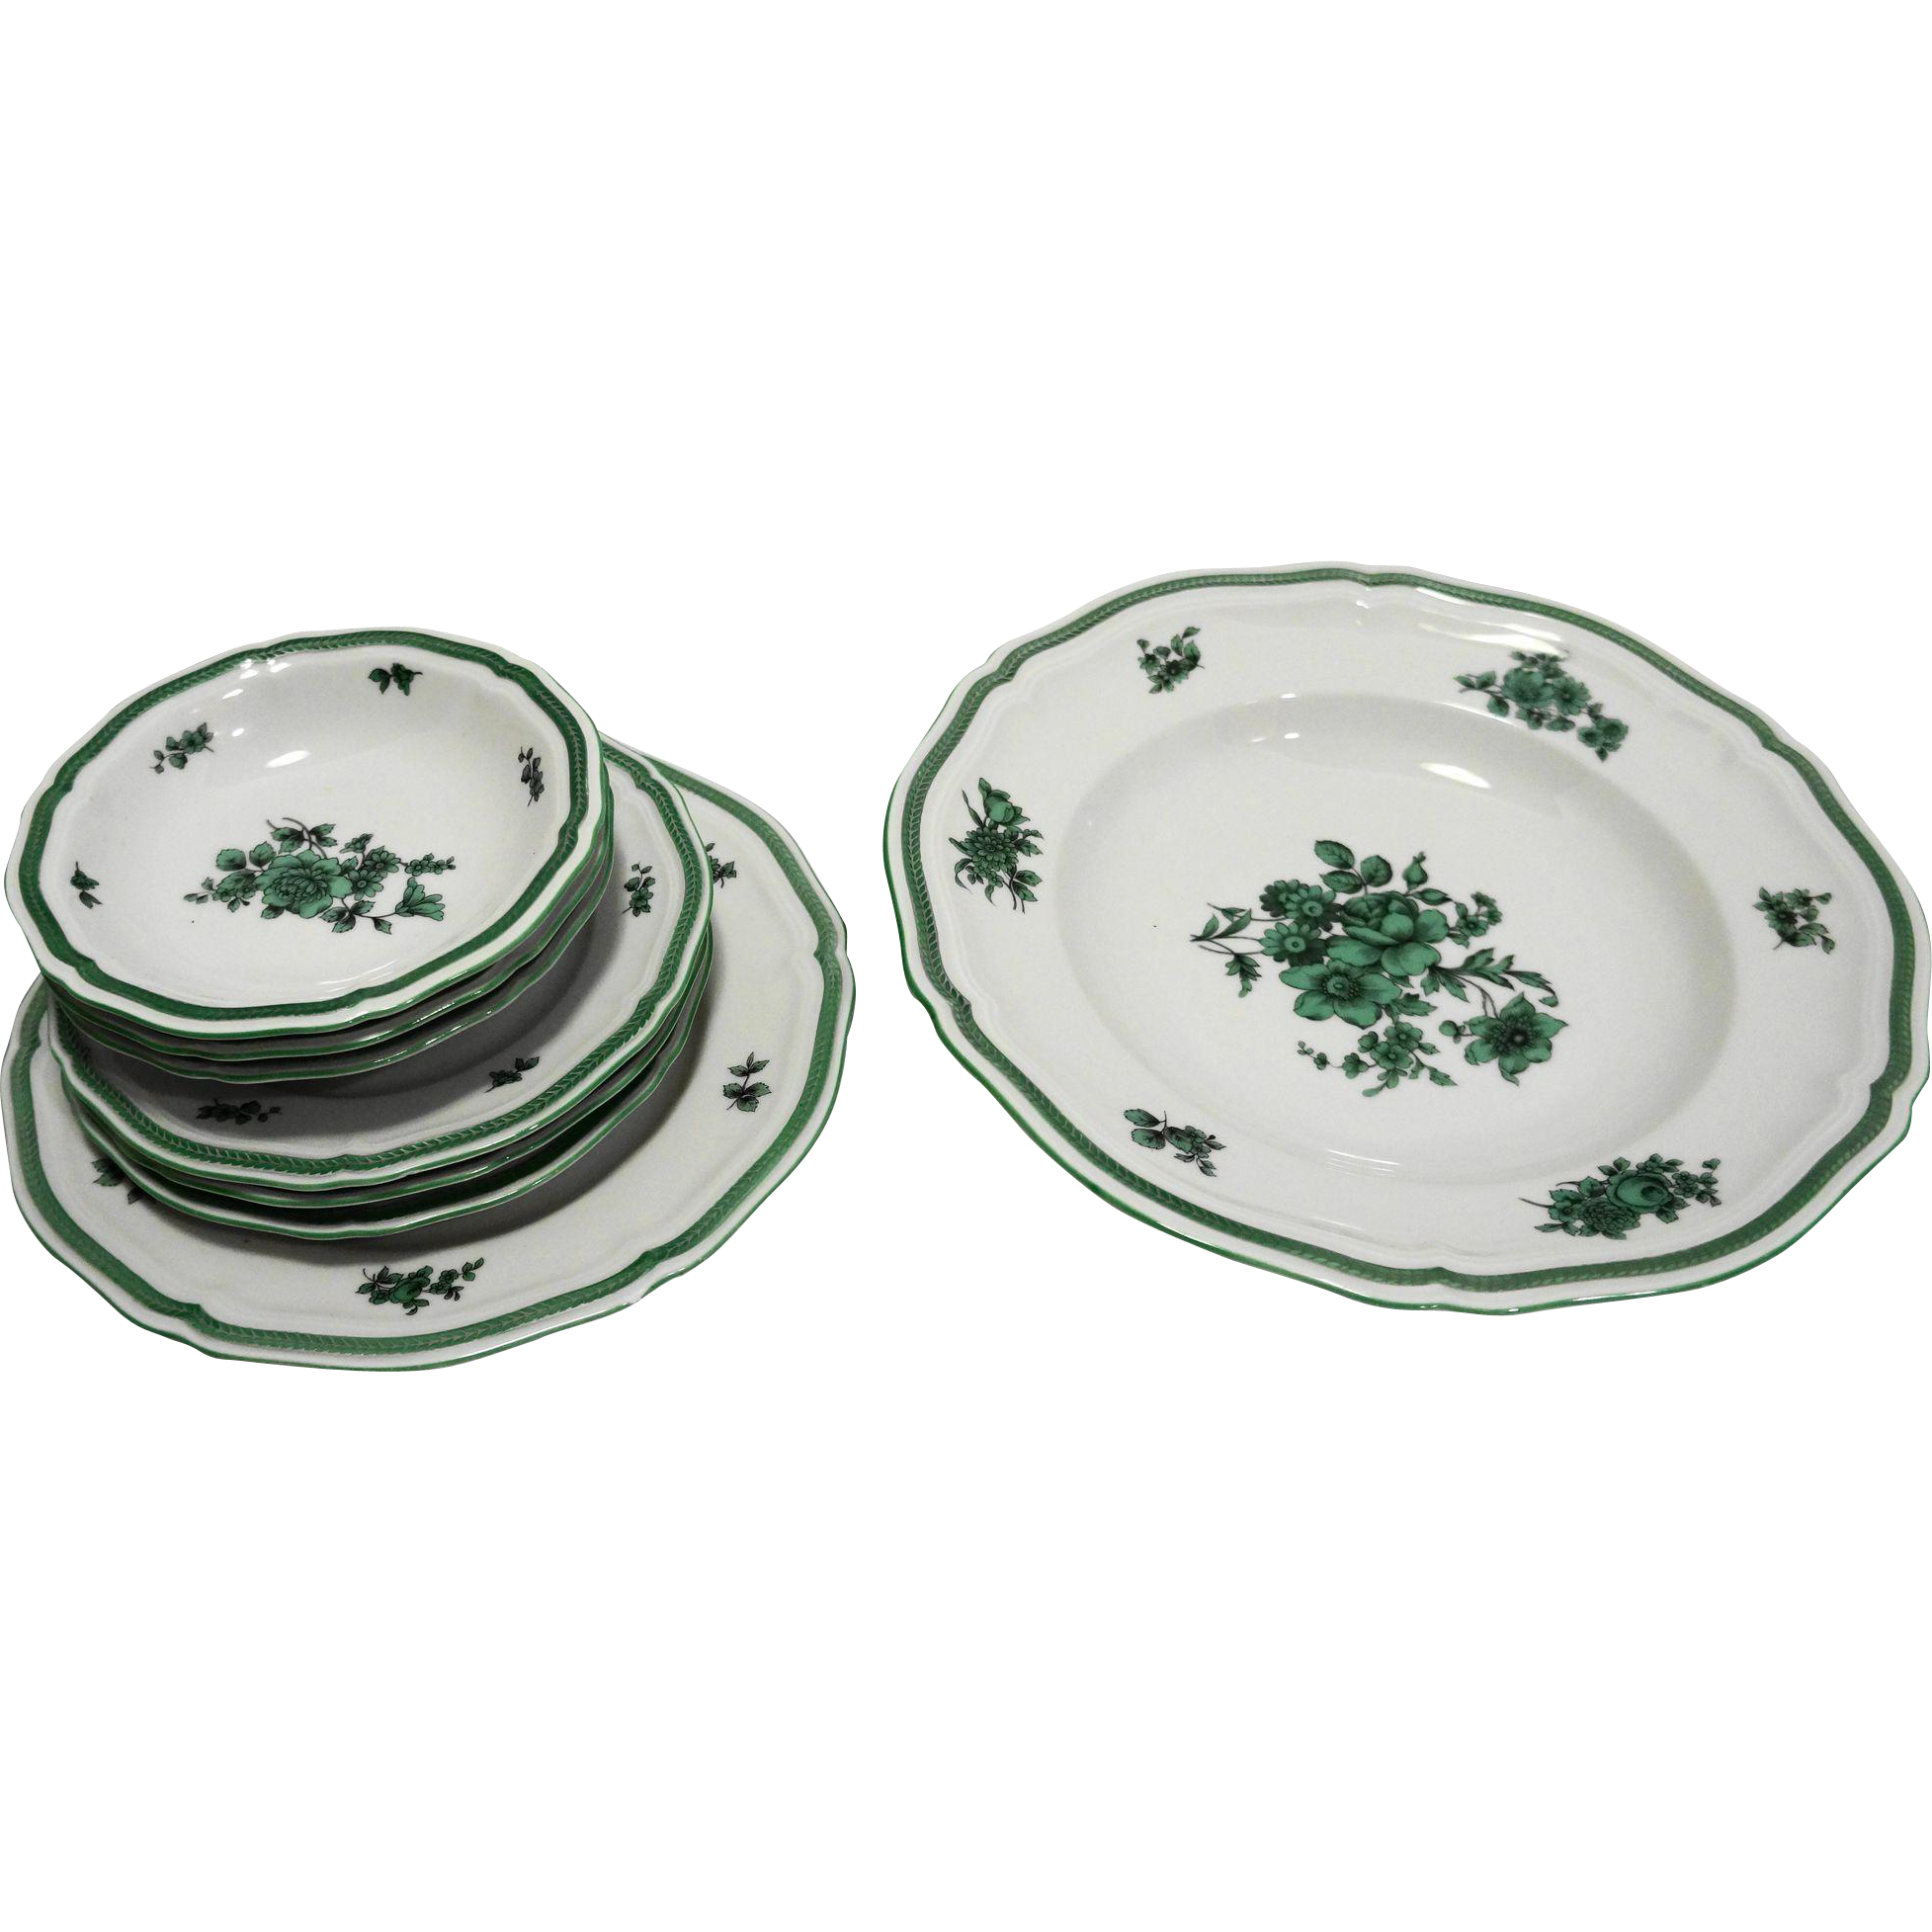 Rosenthal Green Bloom Chippendale Shape 8 Pcs Rimmed Soup Bowl Bread Plates Desserts